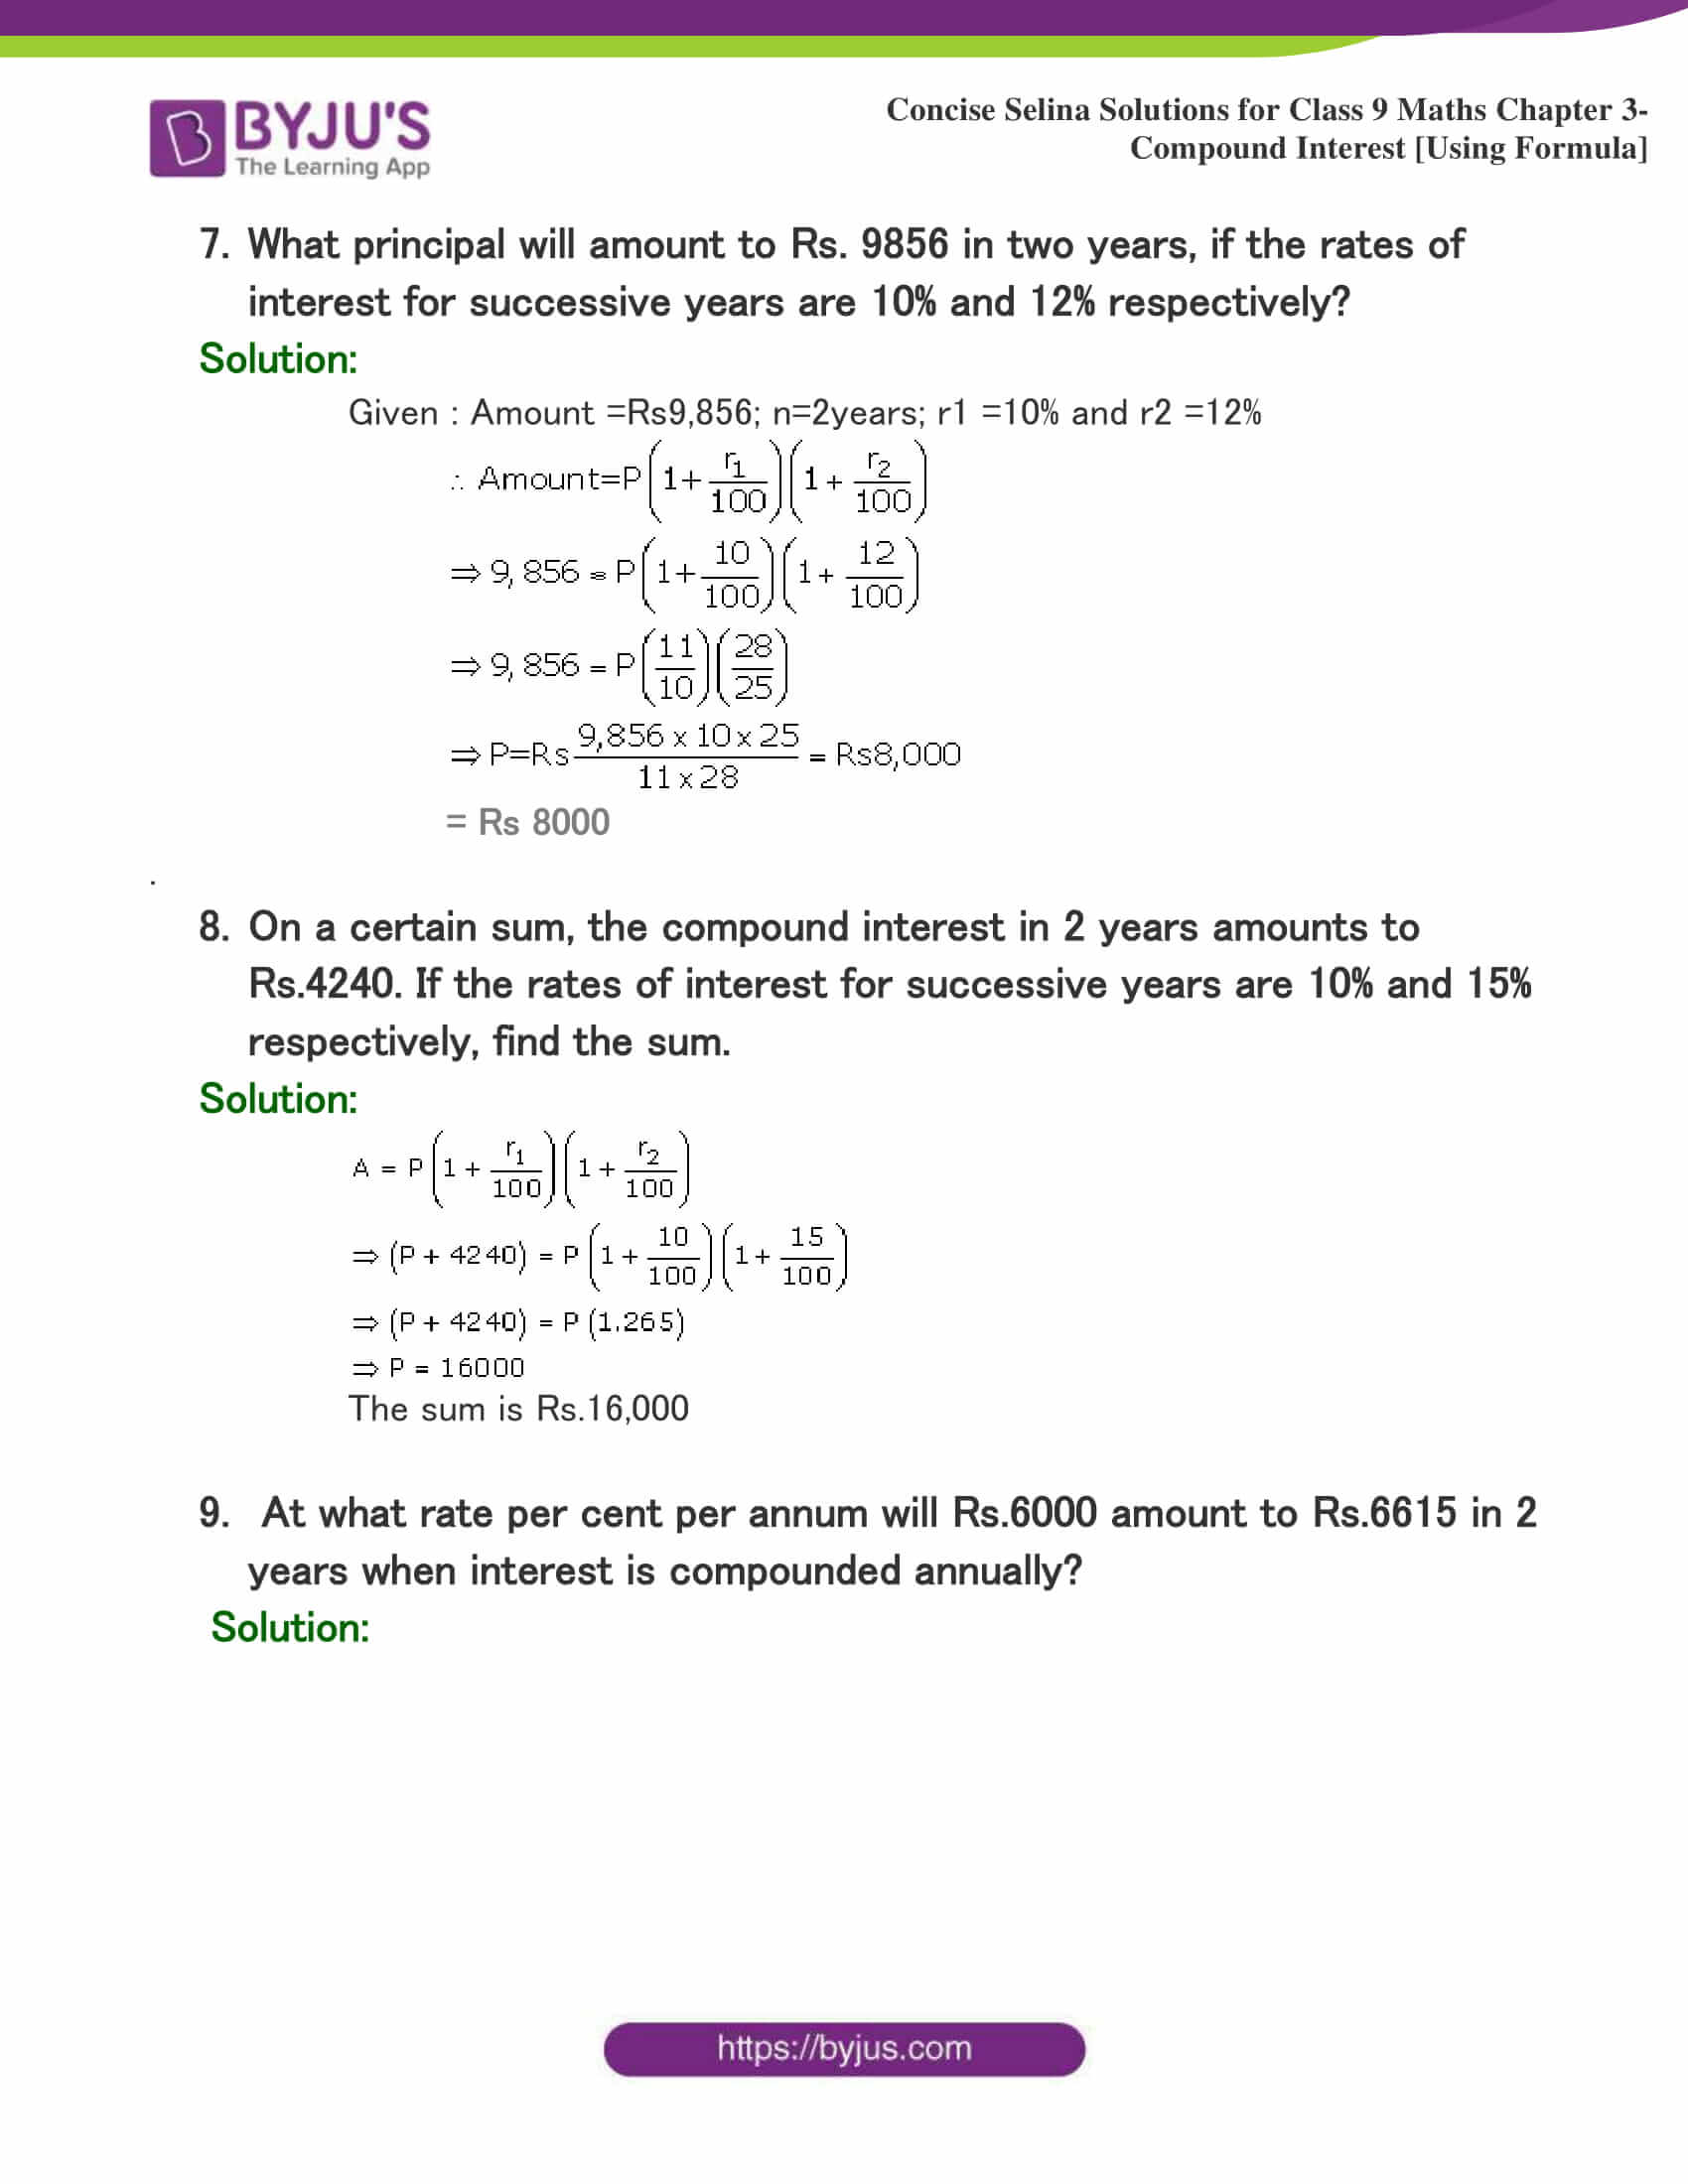 Selina Solutions Class 9 Maths Chapter 3 Compound Interest Using Formula part 04